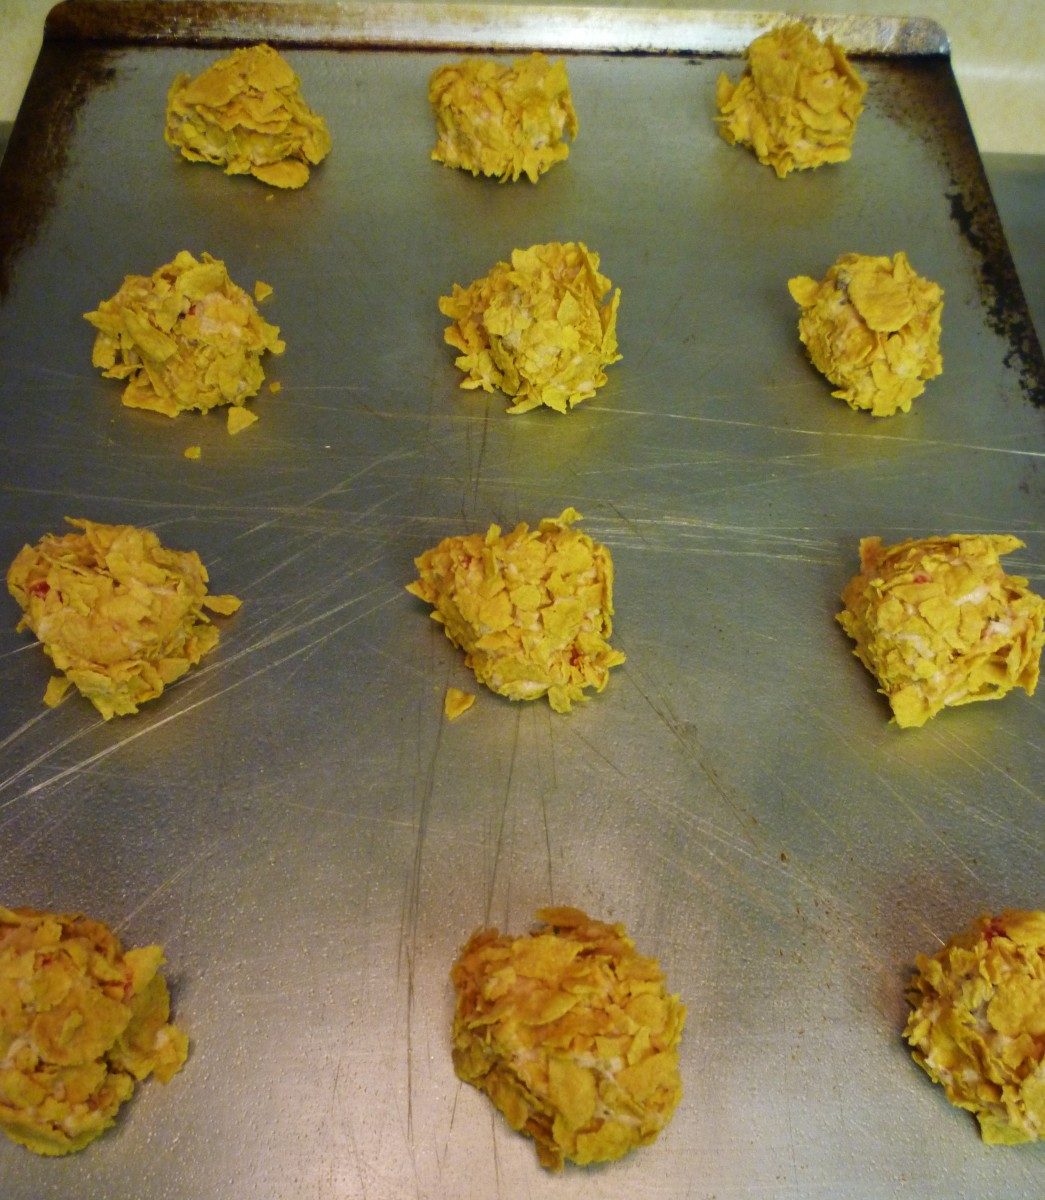 Cherry wink dough rolled in cornflakes and put onto greased cookie sheet.